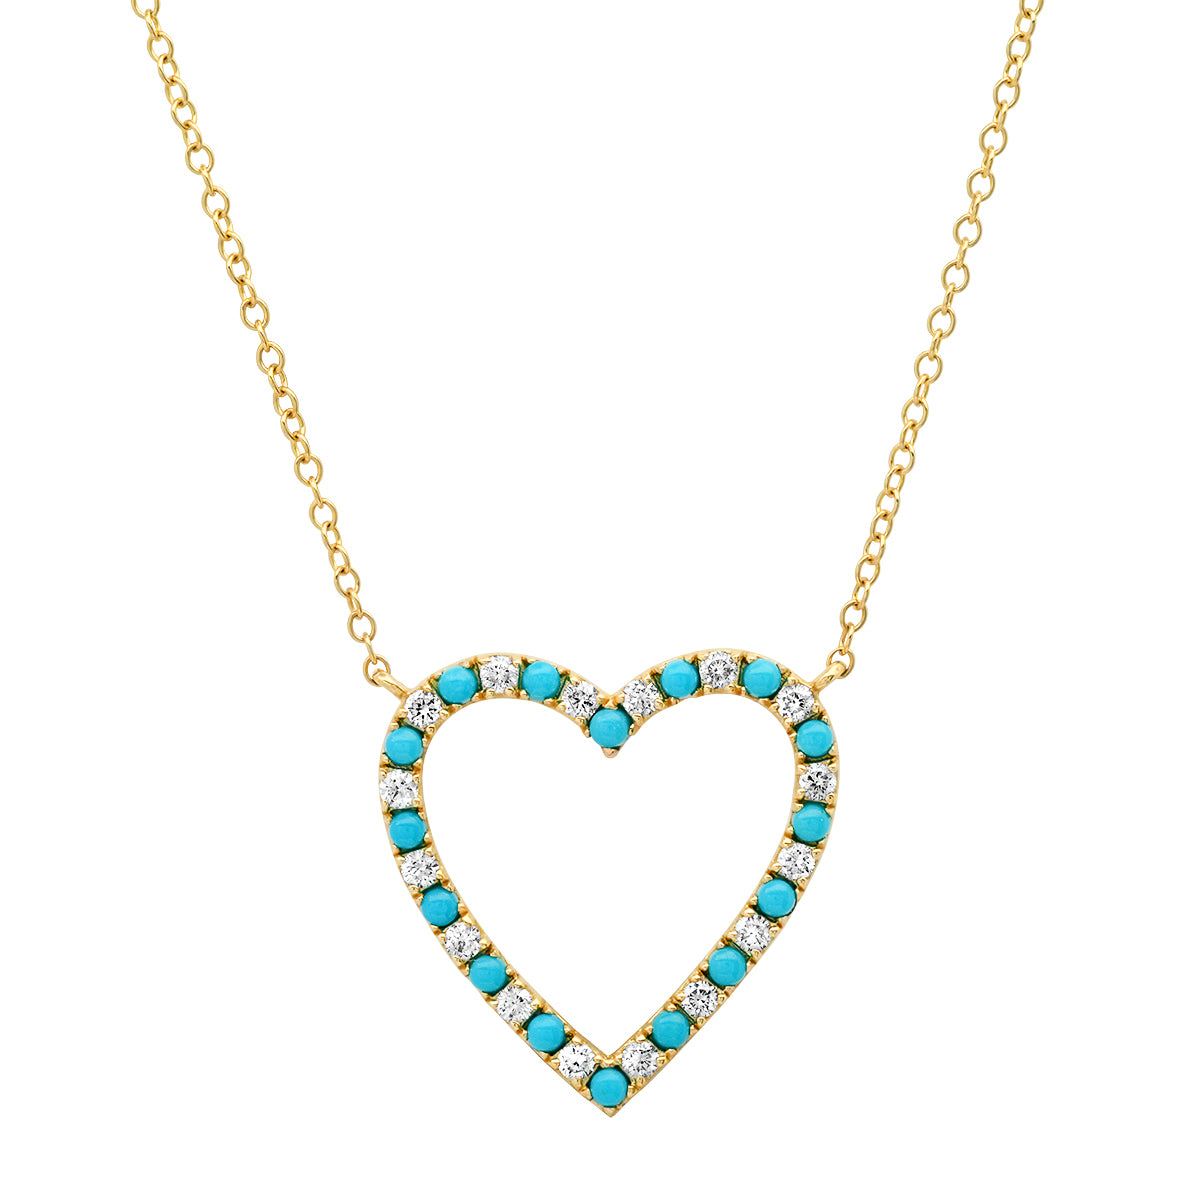 Diamond and Turquoise Open Heart Pendant Necklace